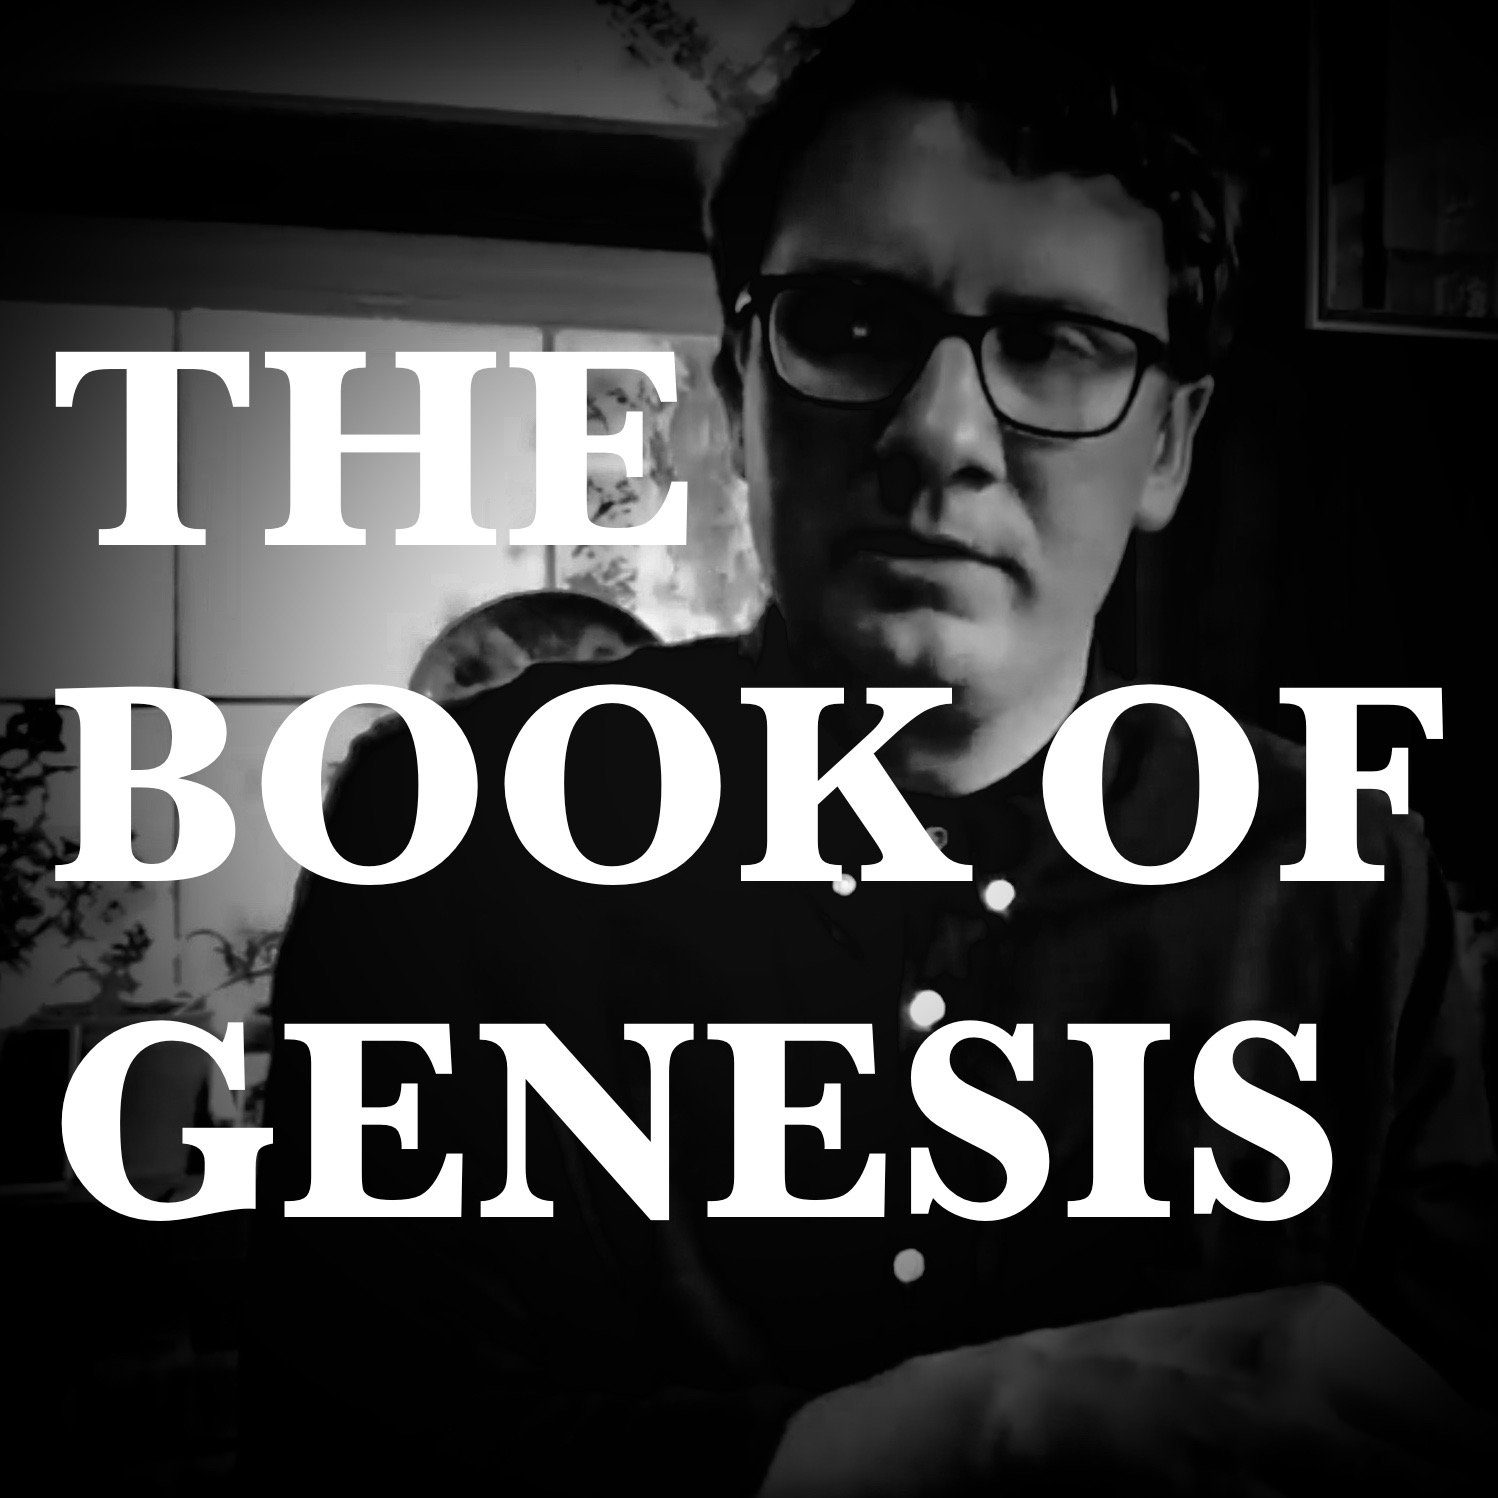 Eight Lectures on the Book of Genesis